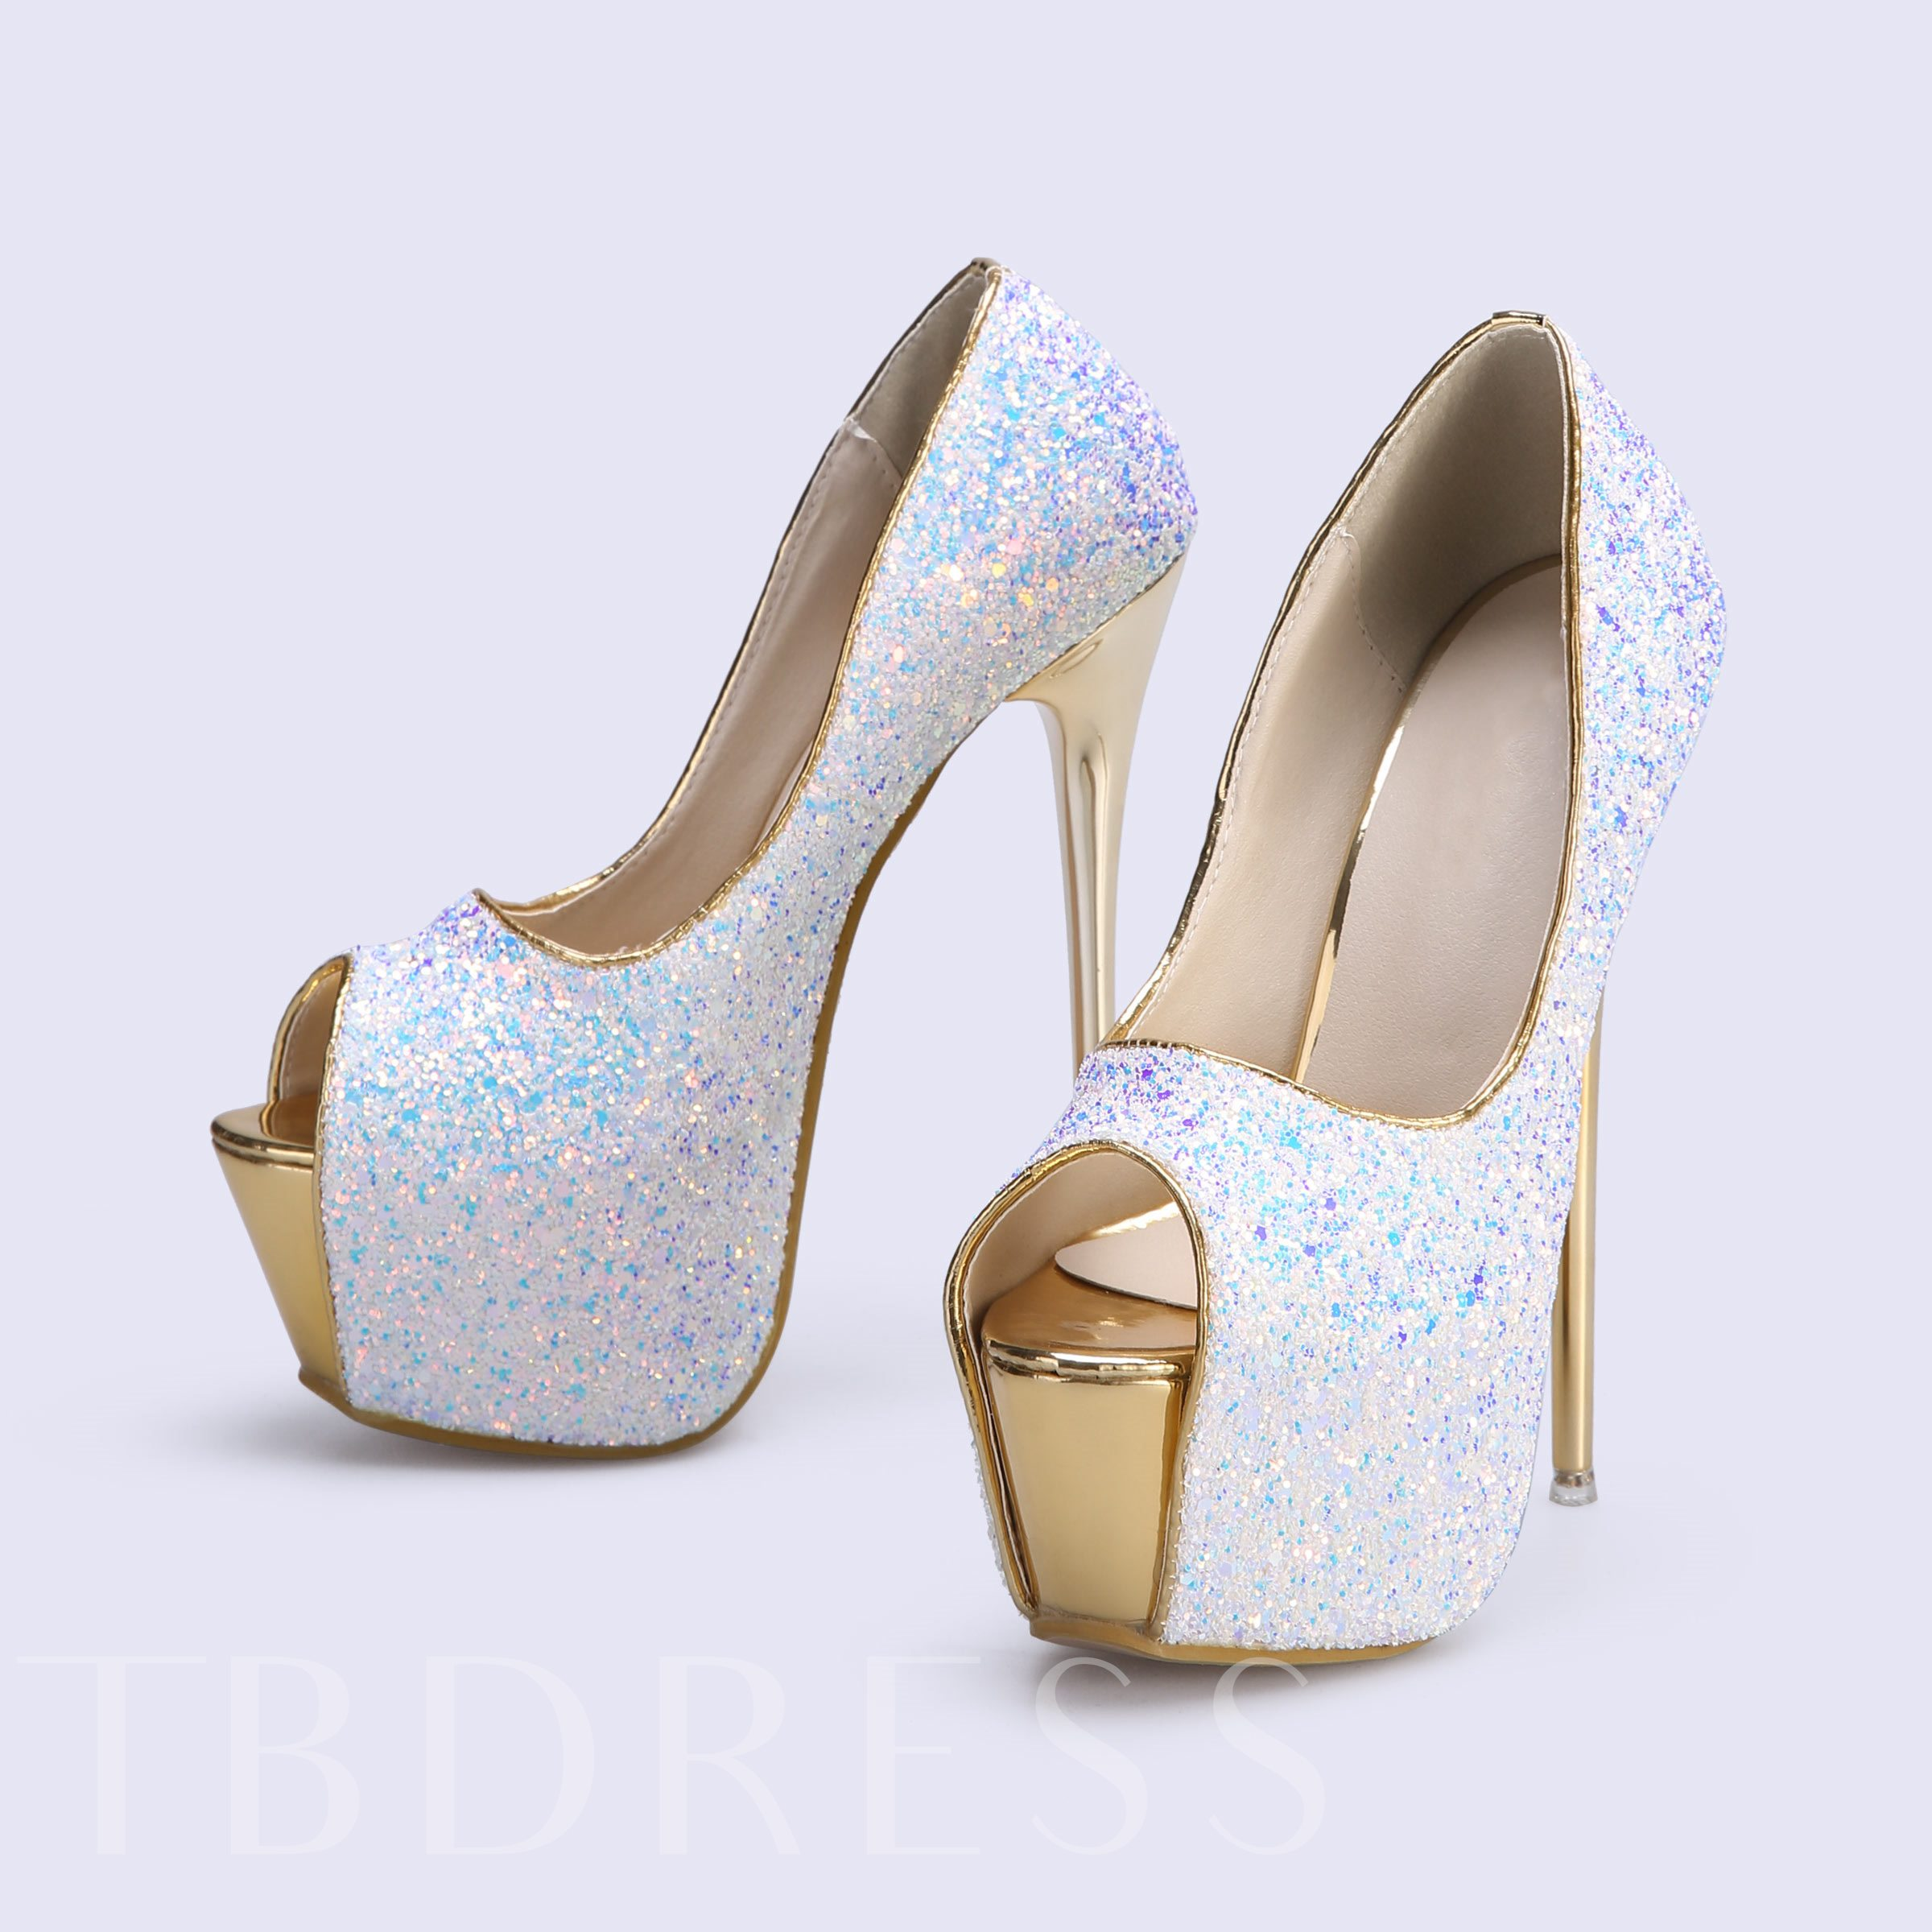 Stiletto Heel Peep Toe Banquet Sequins Platform PU Women's Pumps